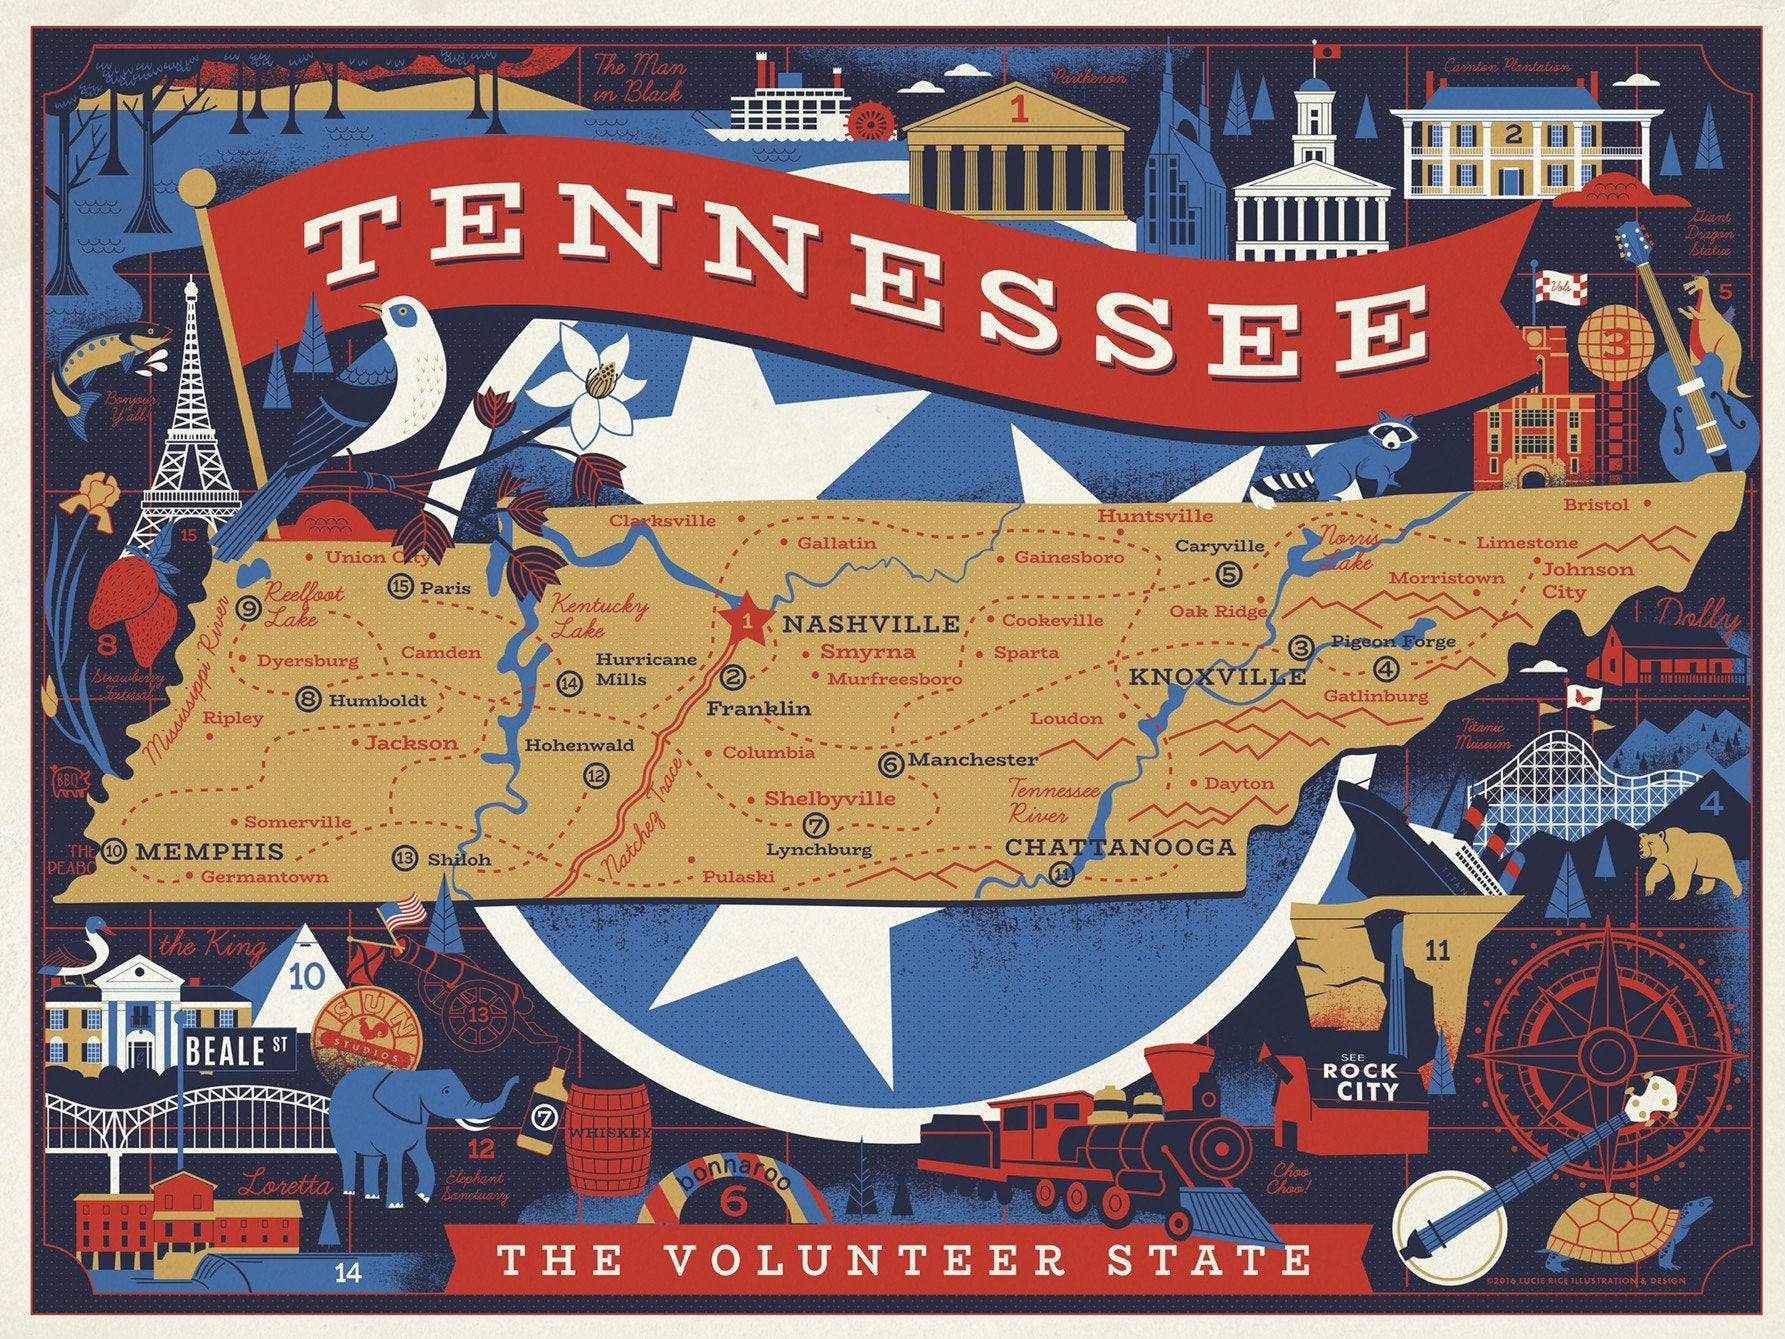 Buy Tennessee Volunteer State, 500 Piece Jigsaw Puzzle from Walking Pants Curiosities, the Most un-General Gift Store in Downtown Memphis, Tennessee!